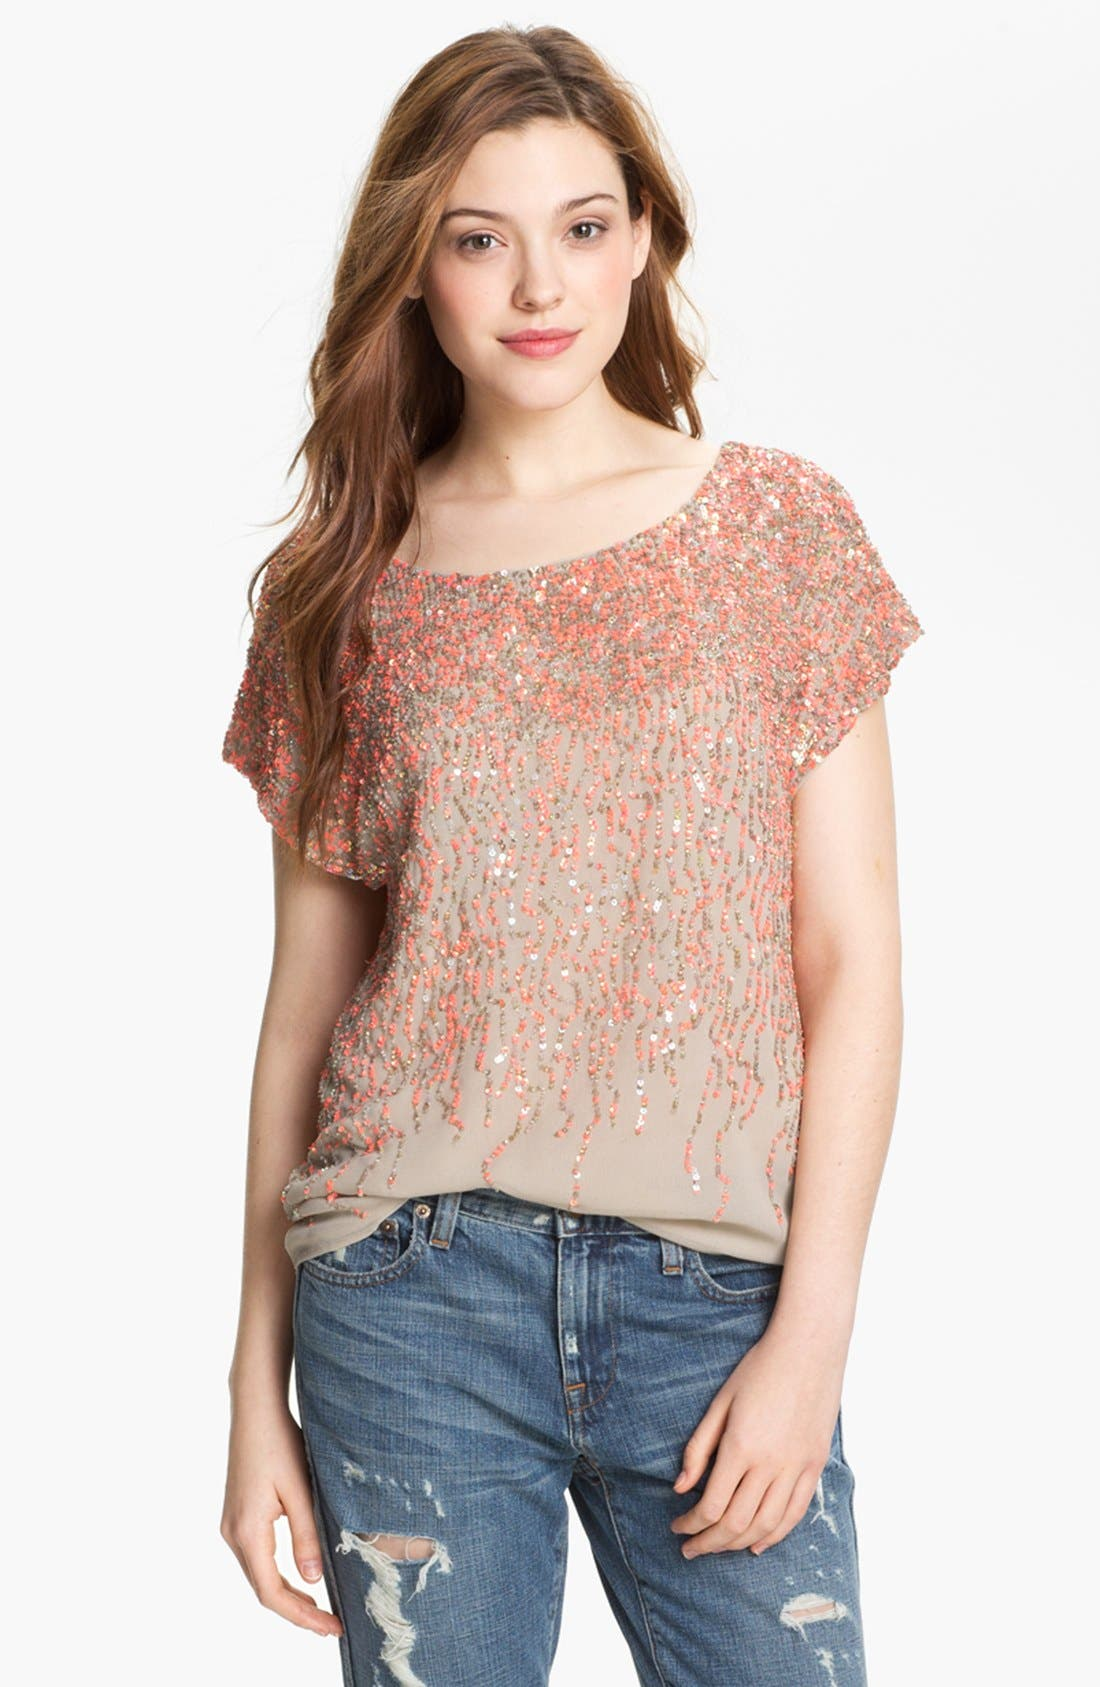 Alternate Image 1 Selected - Vince Camuto Sequin Blouse (Petite)